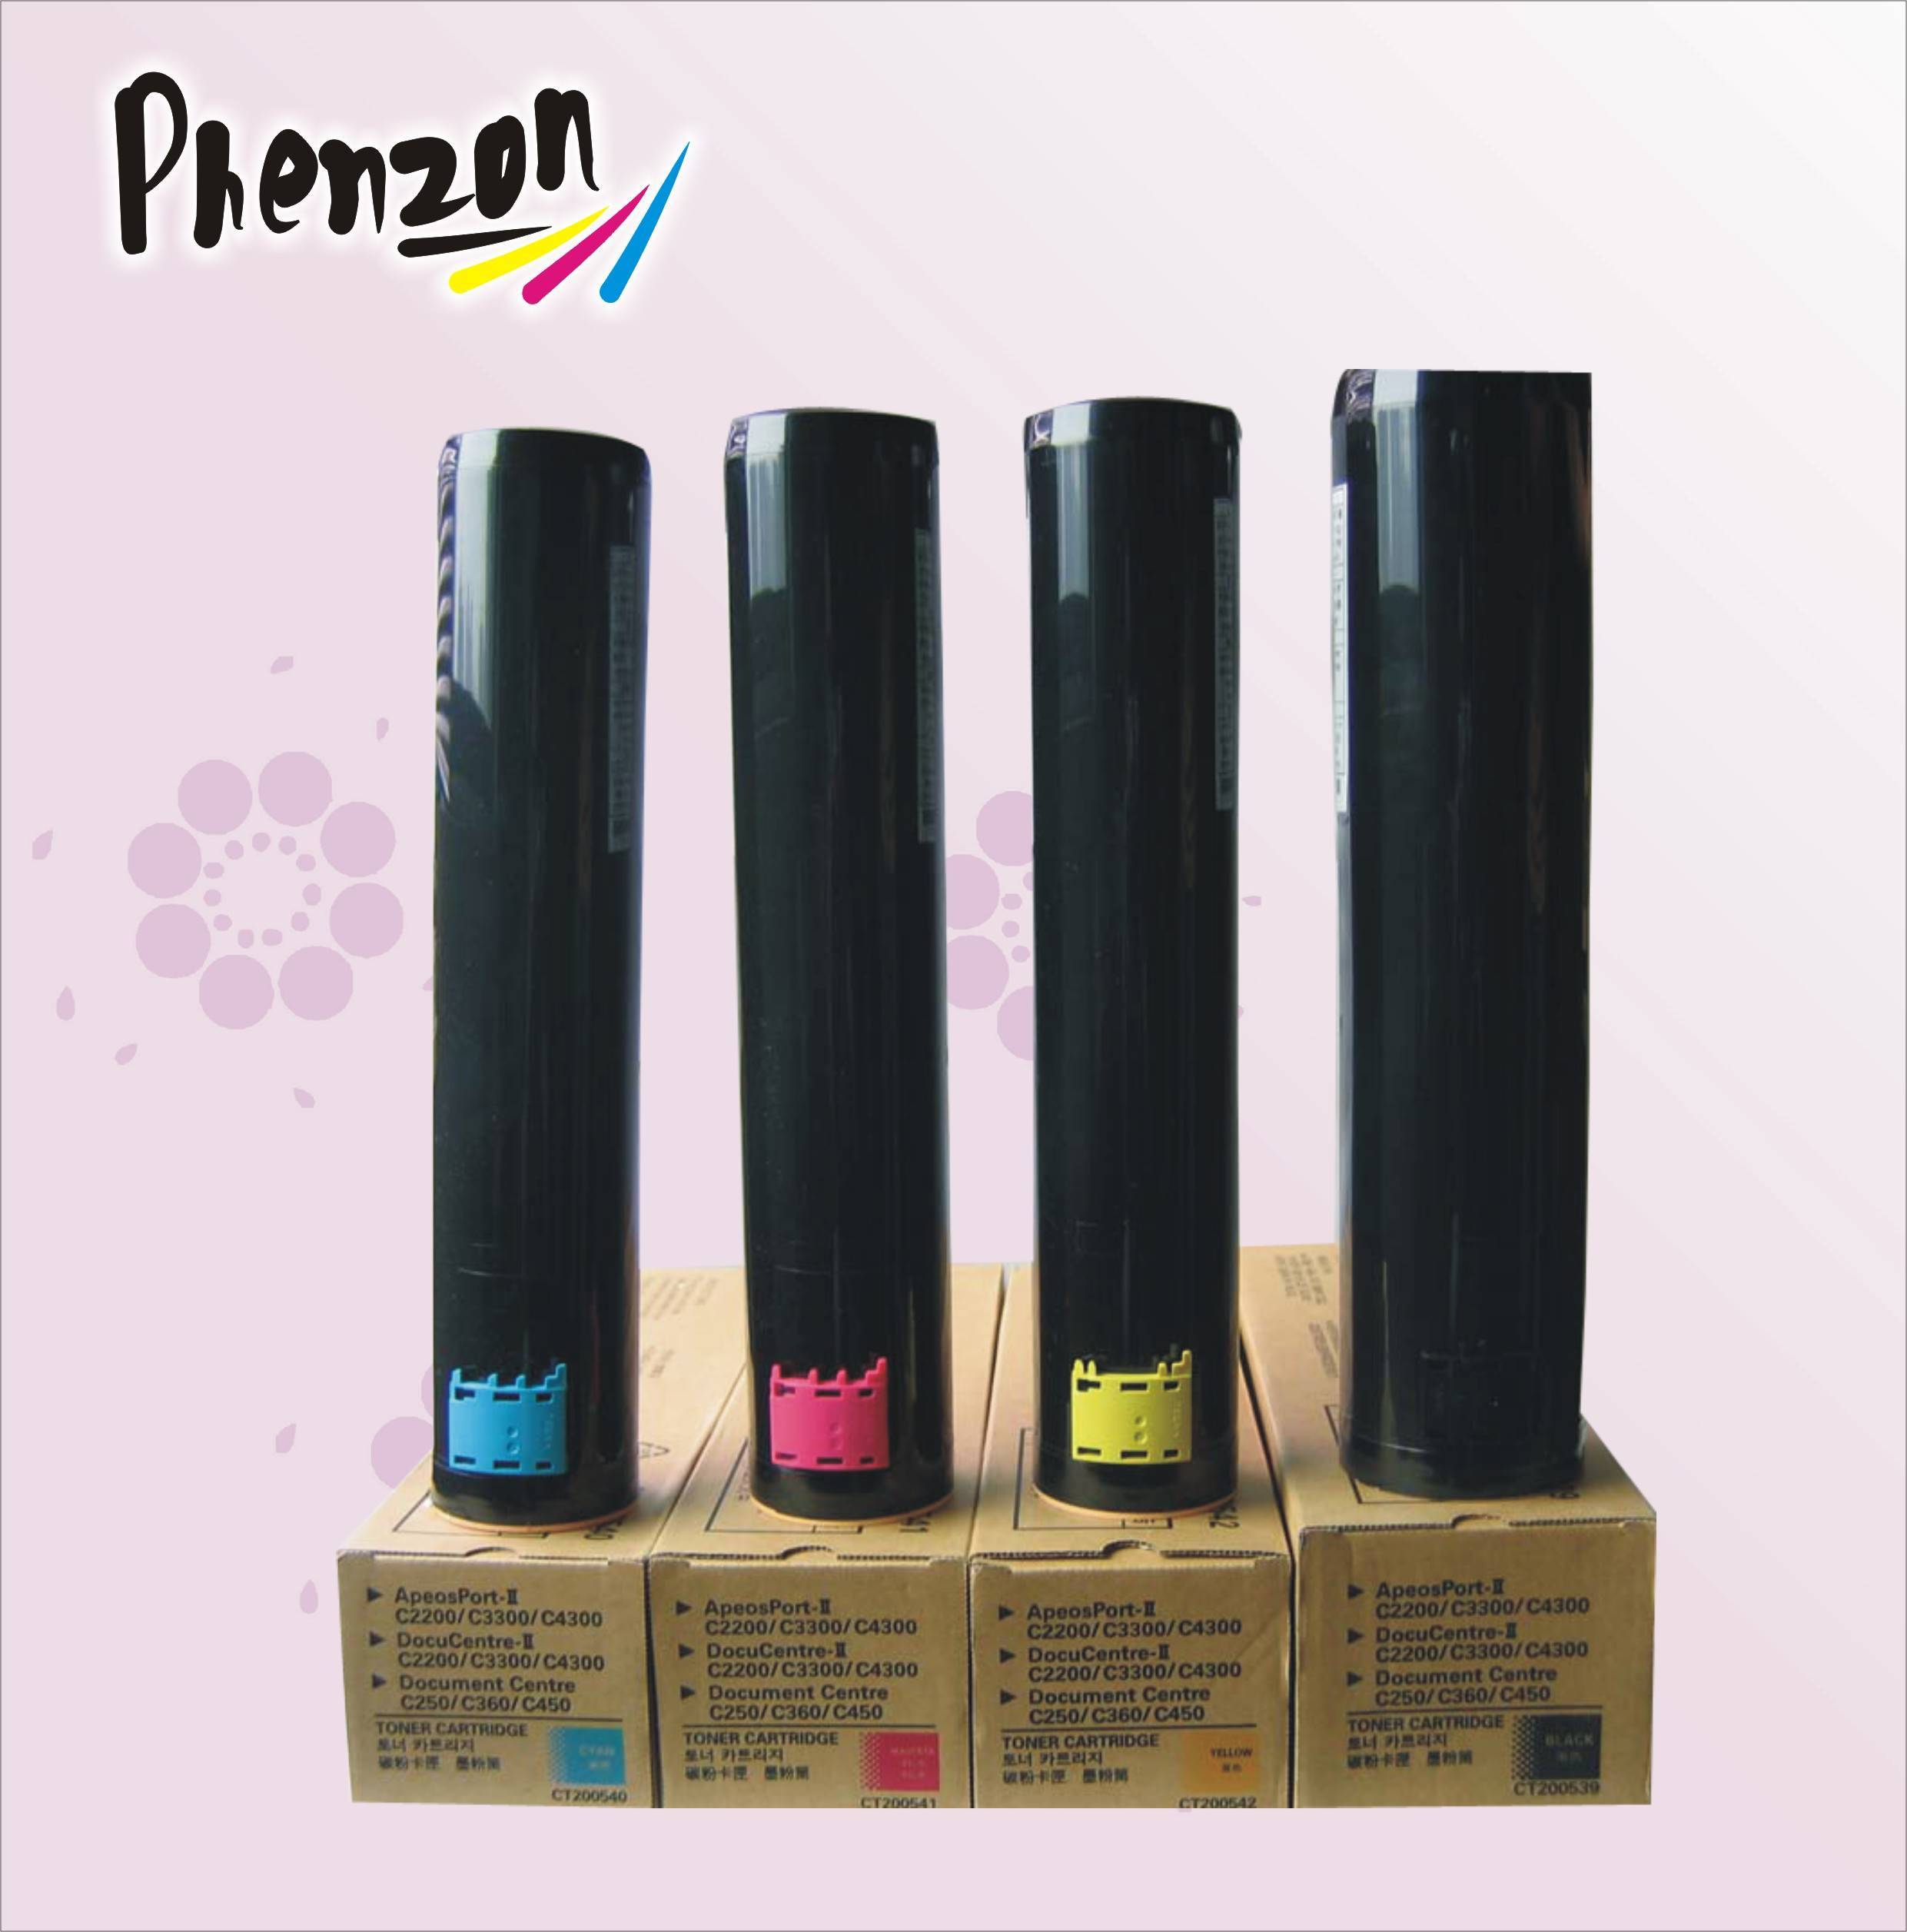 Compatible color toner cartridge DCC450 for Xerox